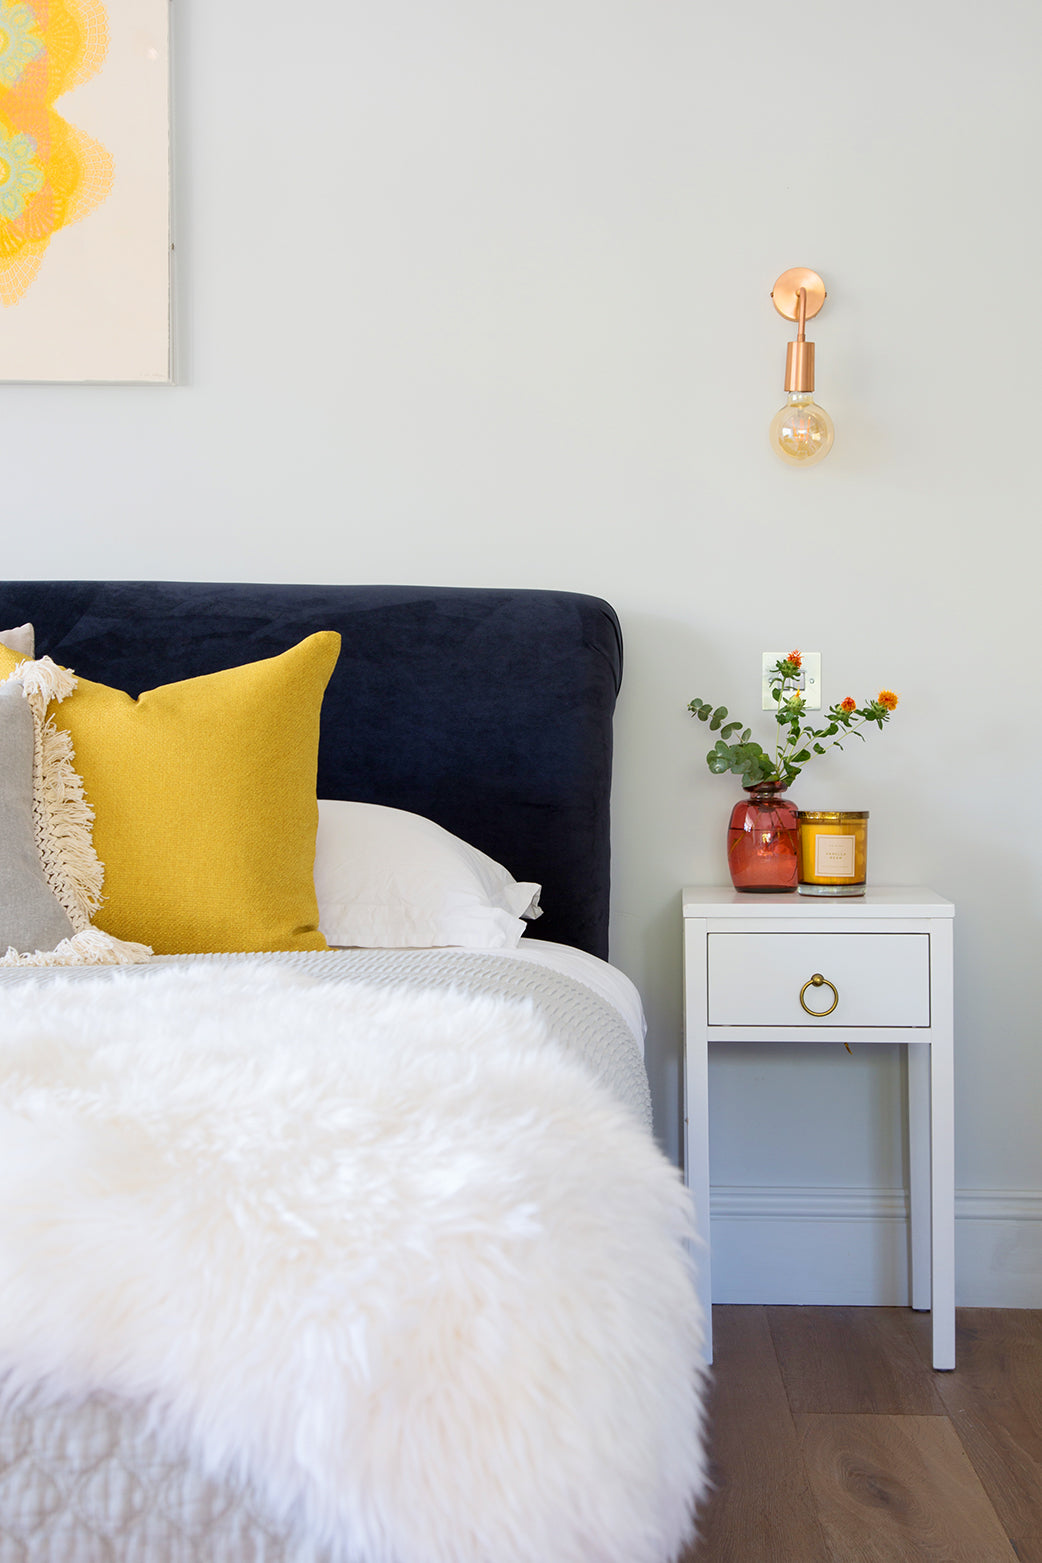 Hygge inspired bedroom interior